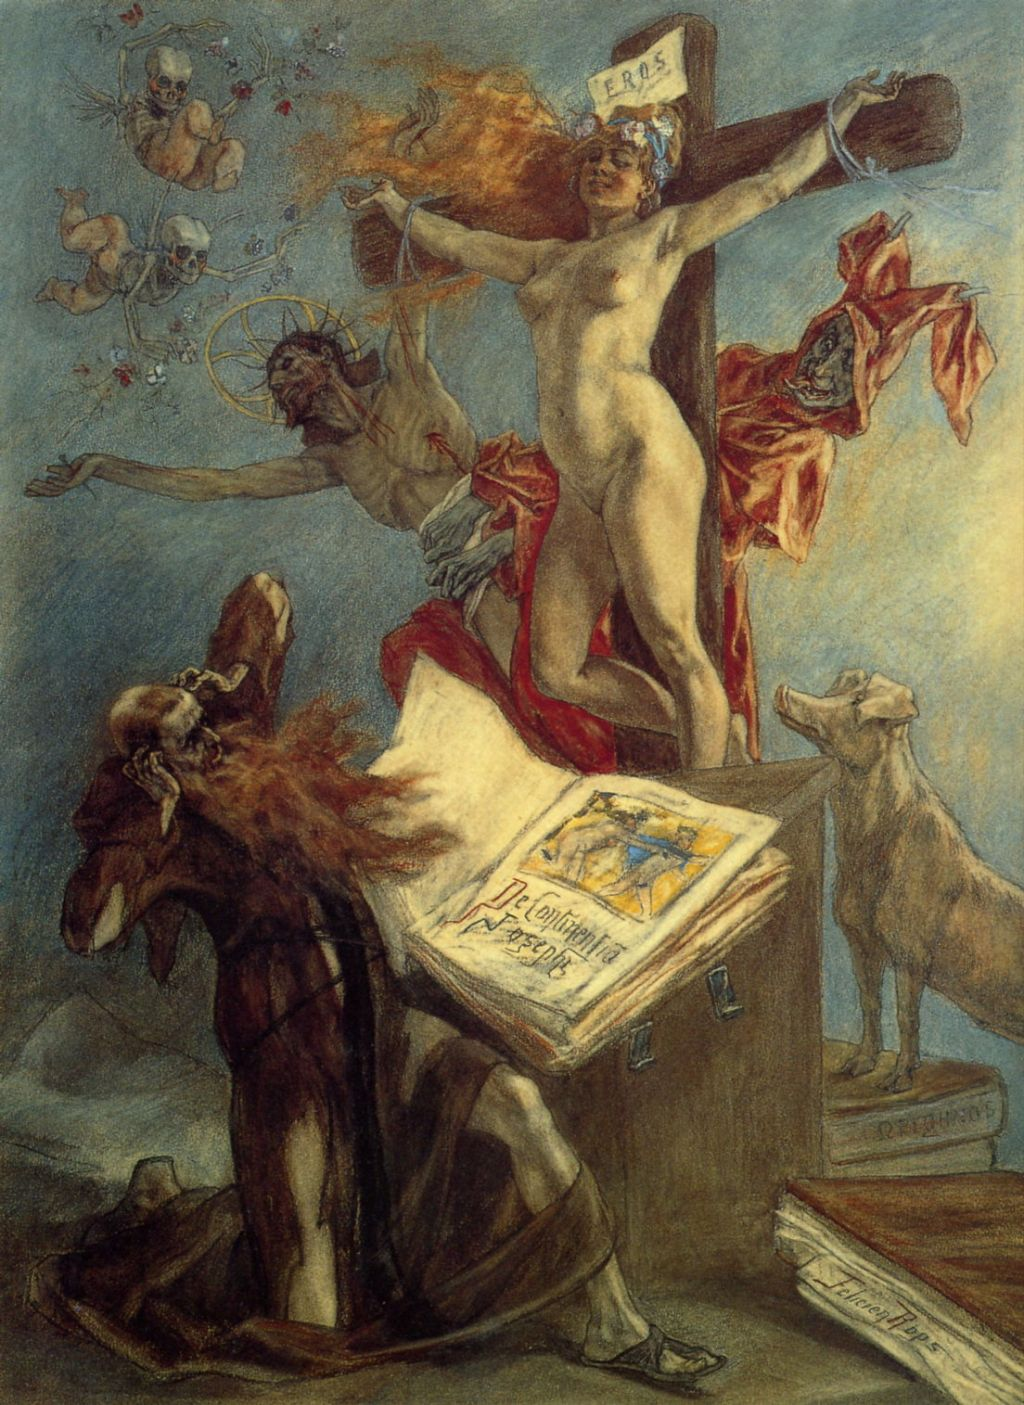 The story in paintings the temptation of saint anthony after flicien rops 18331898 the temptation of saint anthony 1878 pastel and gouache on paper 738 543 cm cabinet des estampes bibliothque royale biocorpaavc